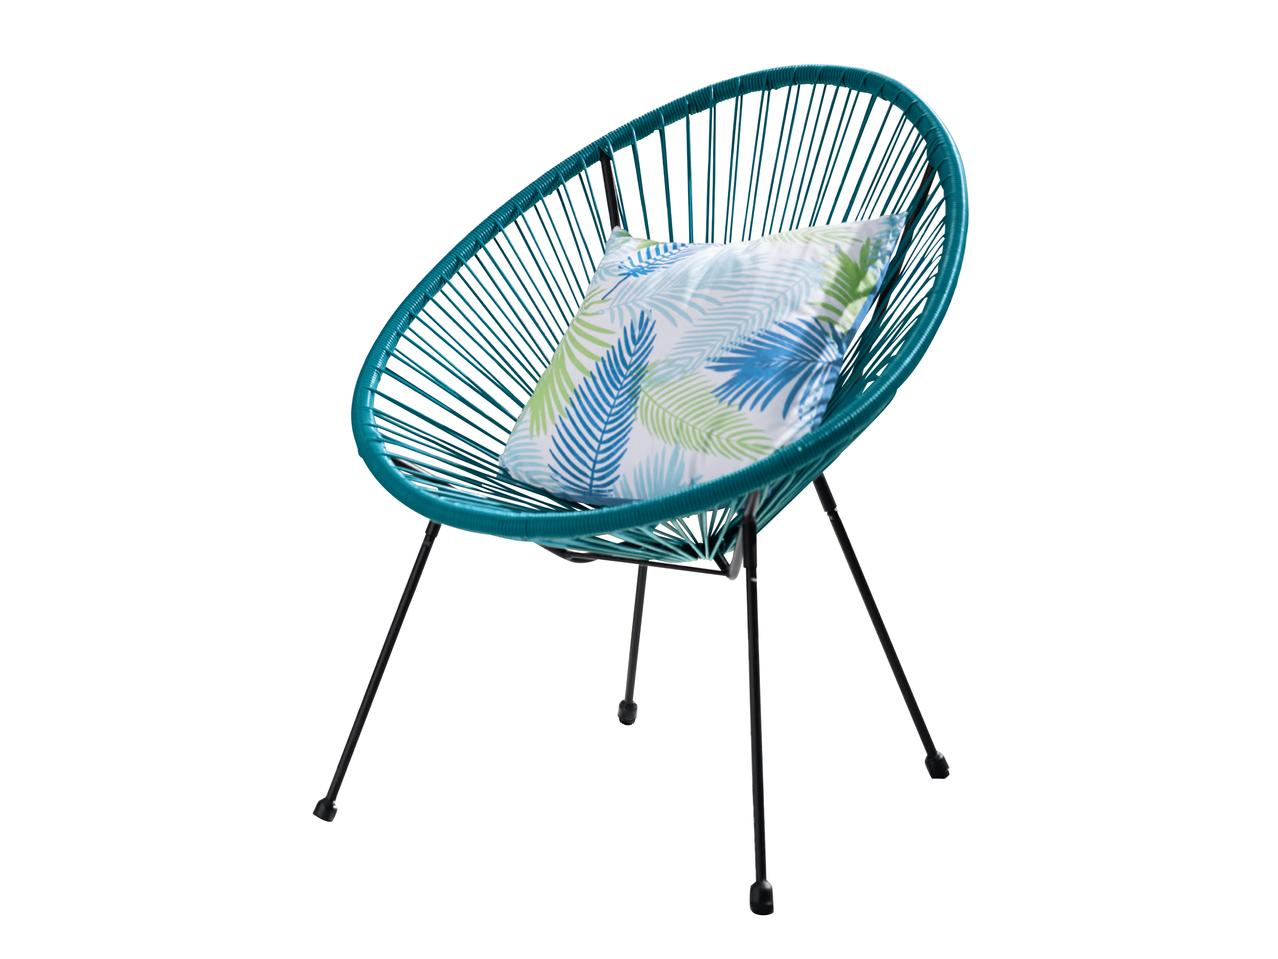 Mexico Chair Schwarz Acapulco Sessel Viva Mexico Chair With Acapulco Sessel X